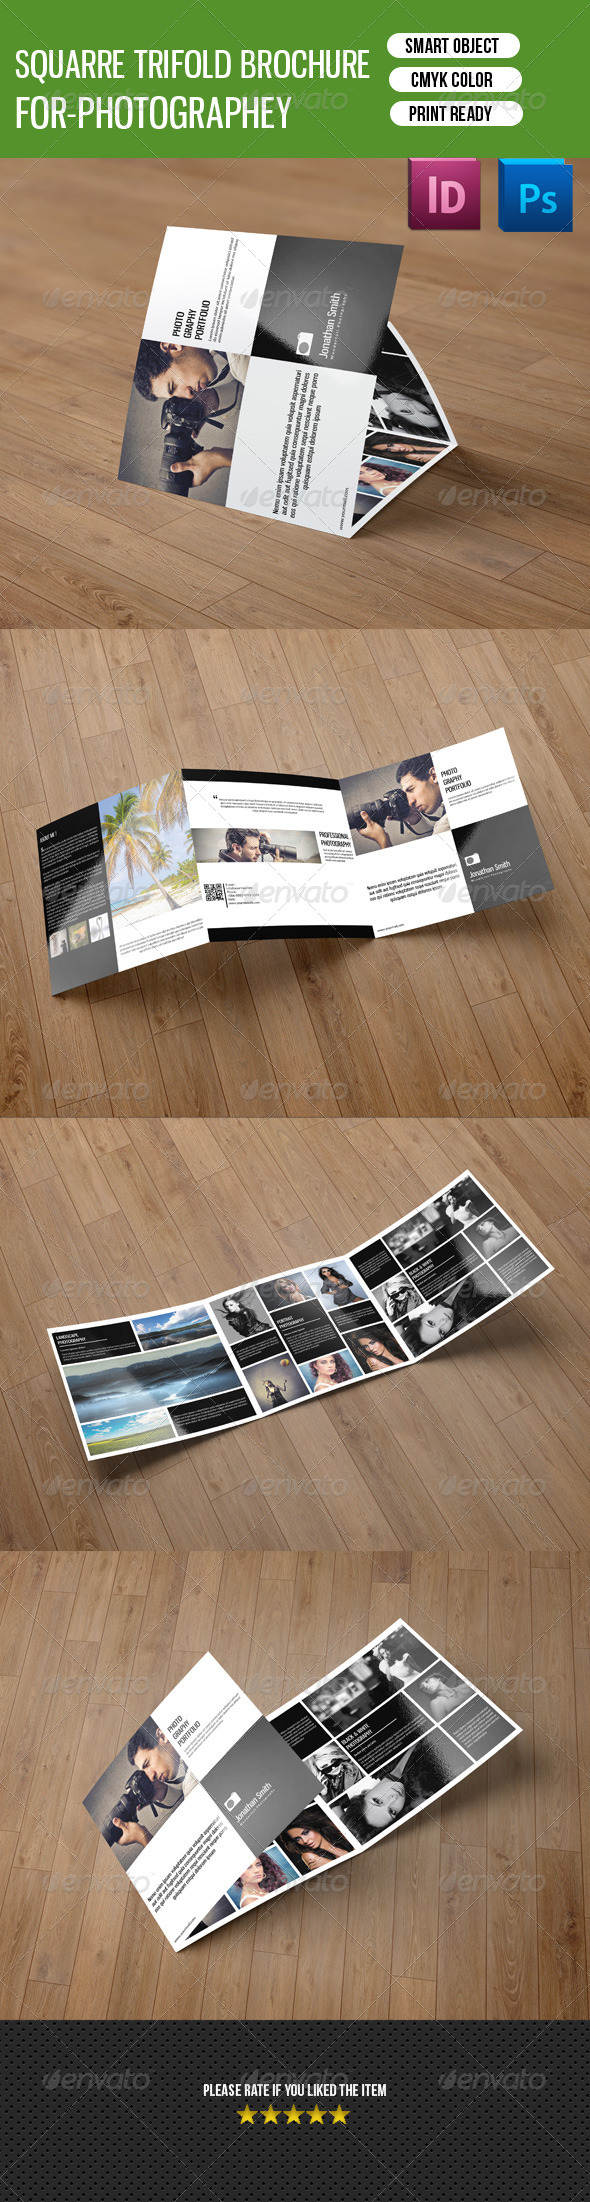 GraphicRiver Square Trifold Photography Brochure-V18 8354349